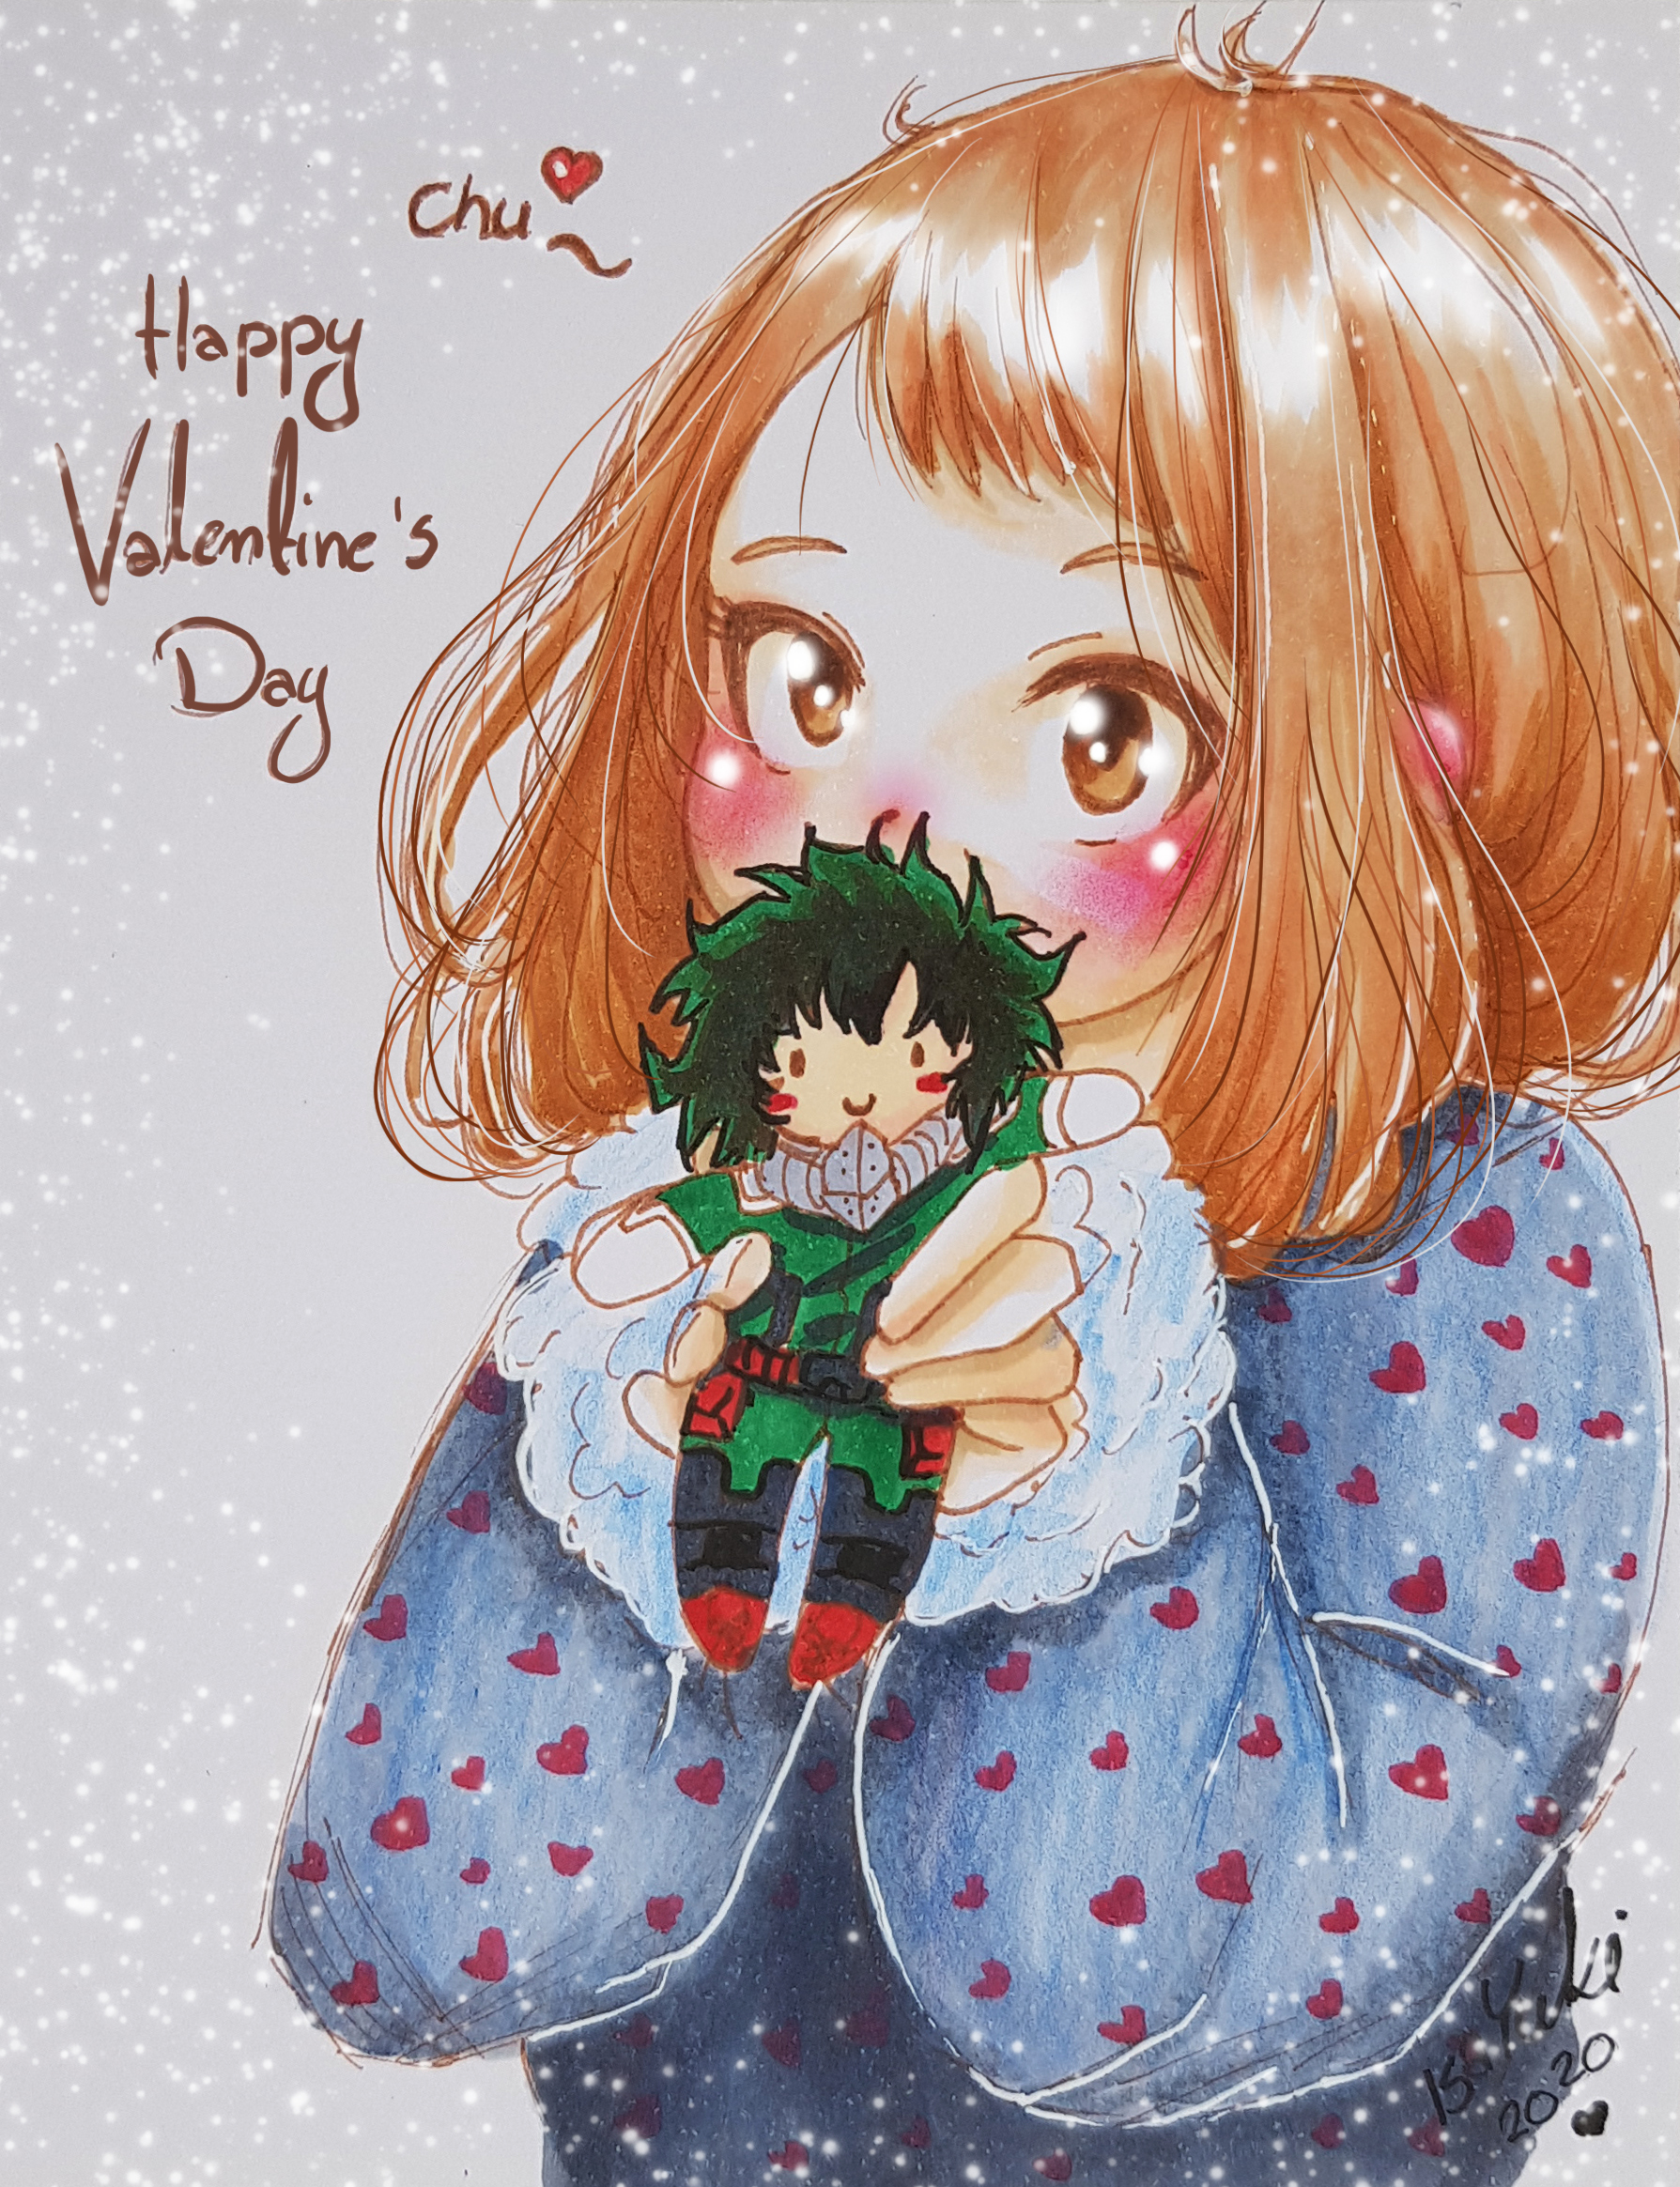 Happy Valentine's Day from My Cute Academia!